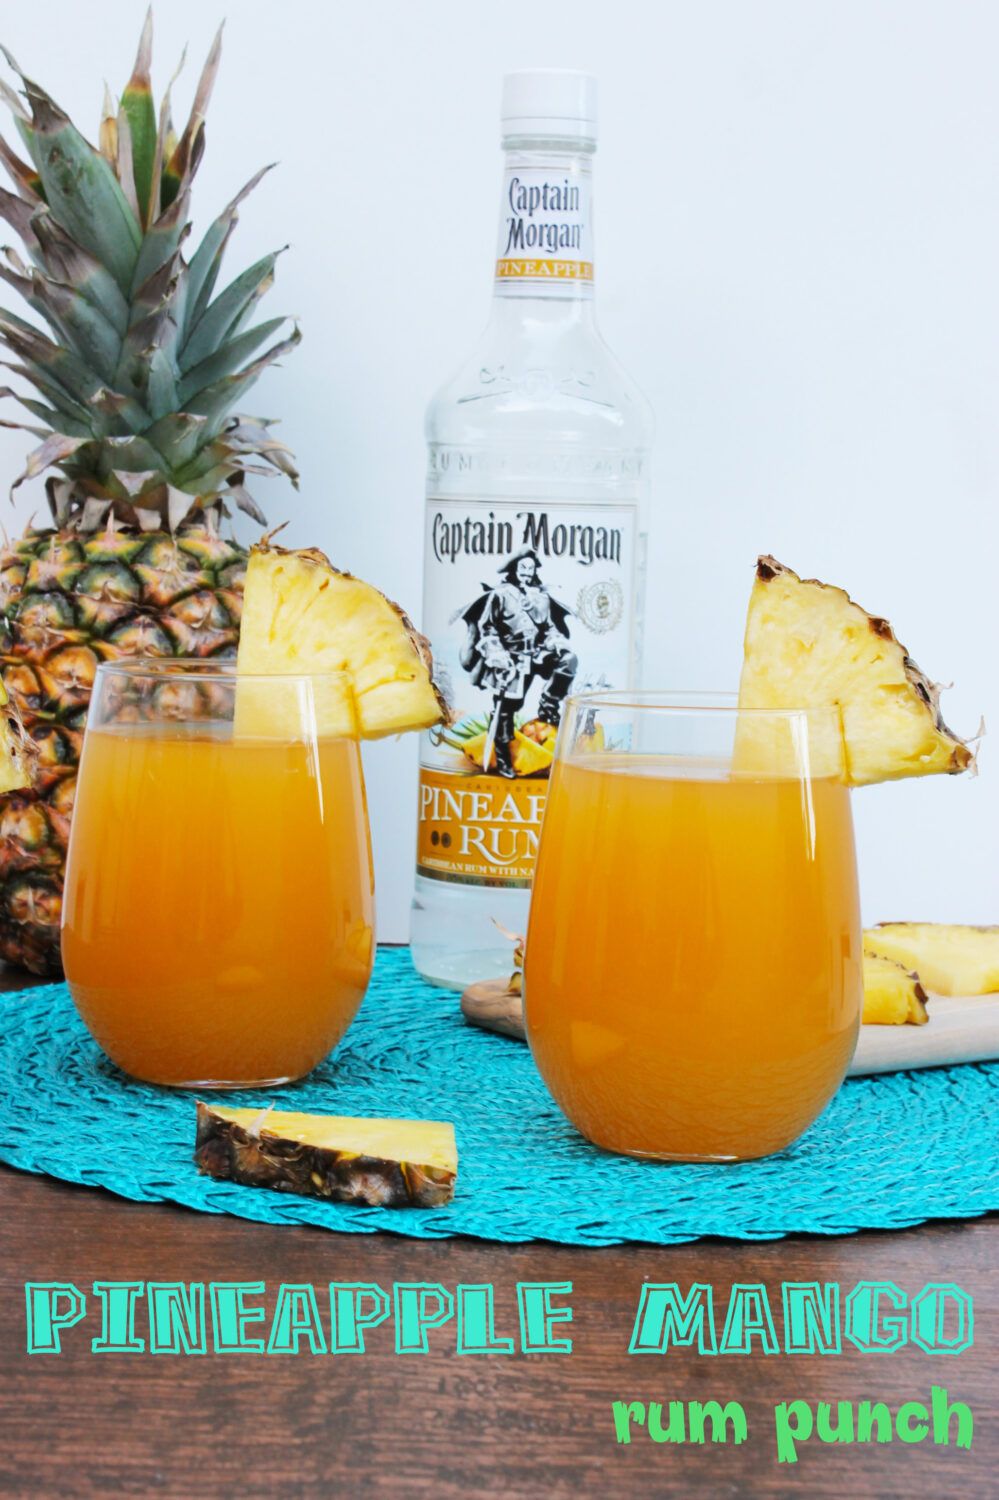 Lifestyle blogger Carly from Lipgloss and Crayons features this pineapple mango rum punch is the perfect summer cocktail recipe! It's ideal for summer cook outs....plus that Captain Morgan's pineapple rum? DELISH!